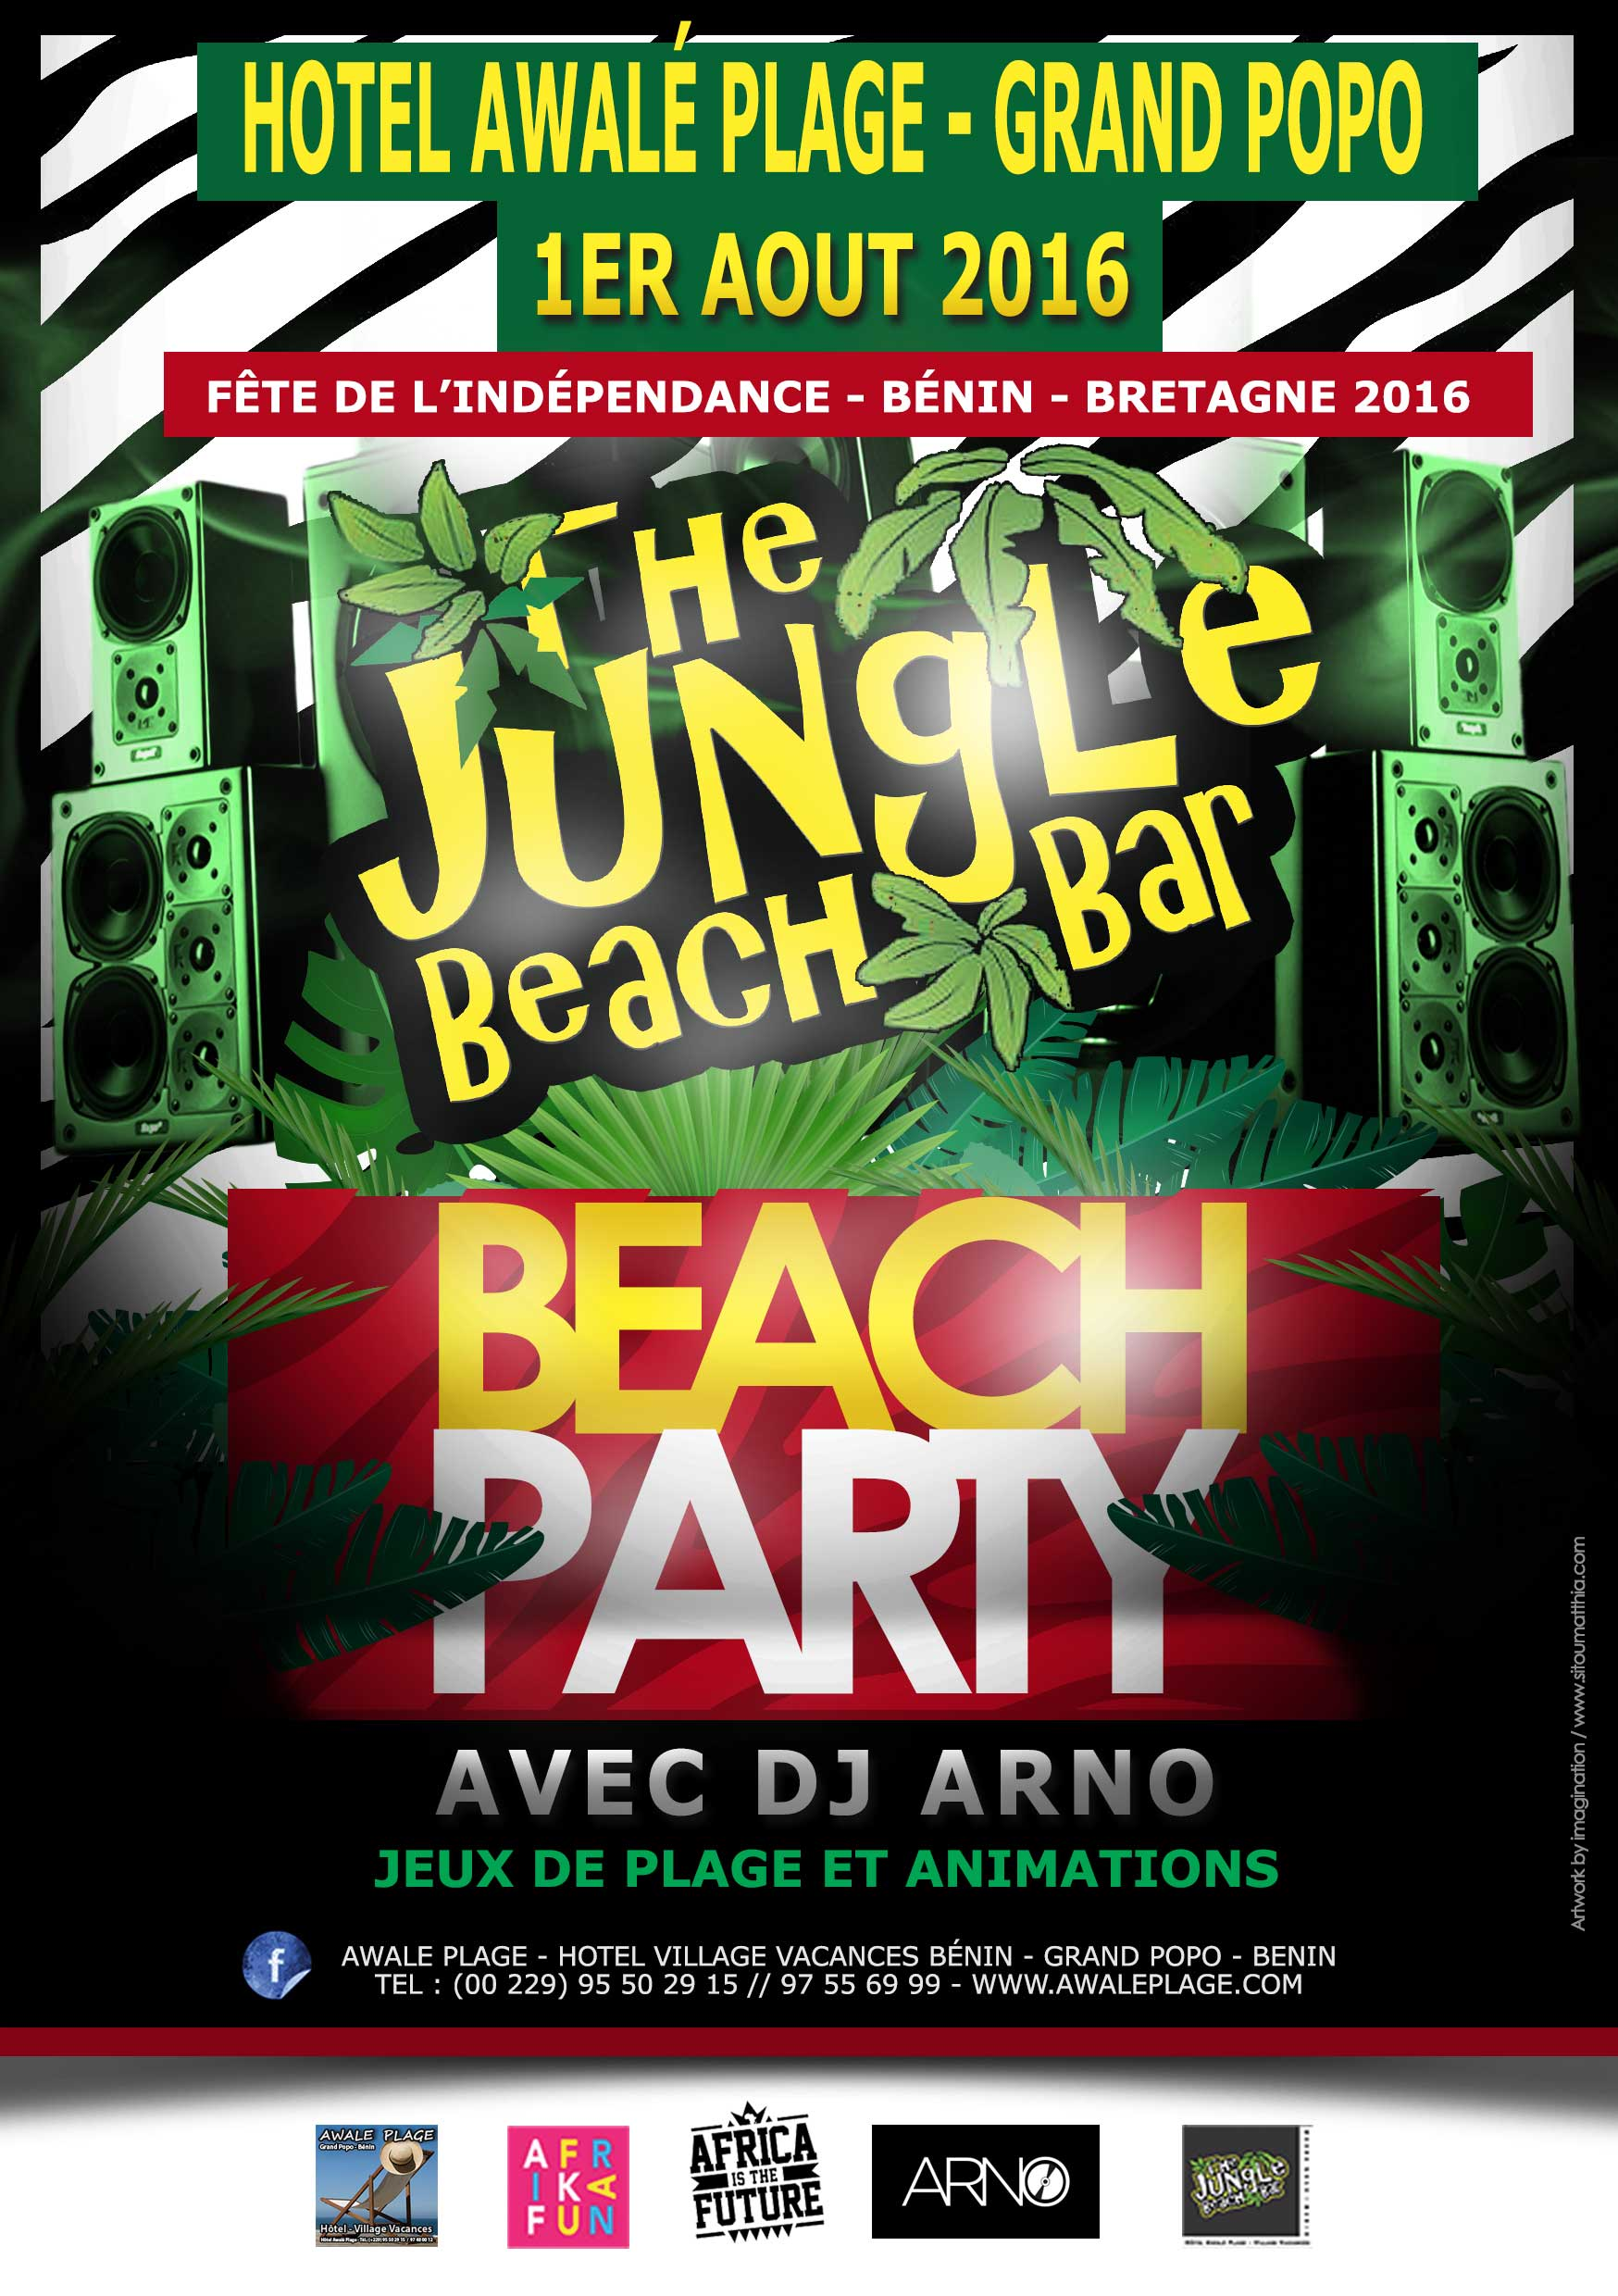 hotel-awale-plage-beach-party-flyer-1er-aout-2016